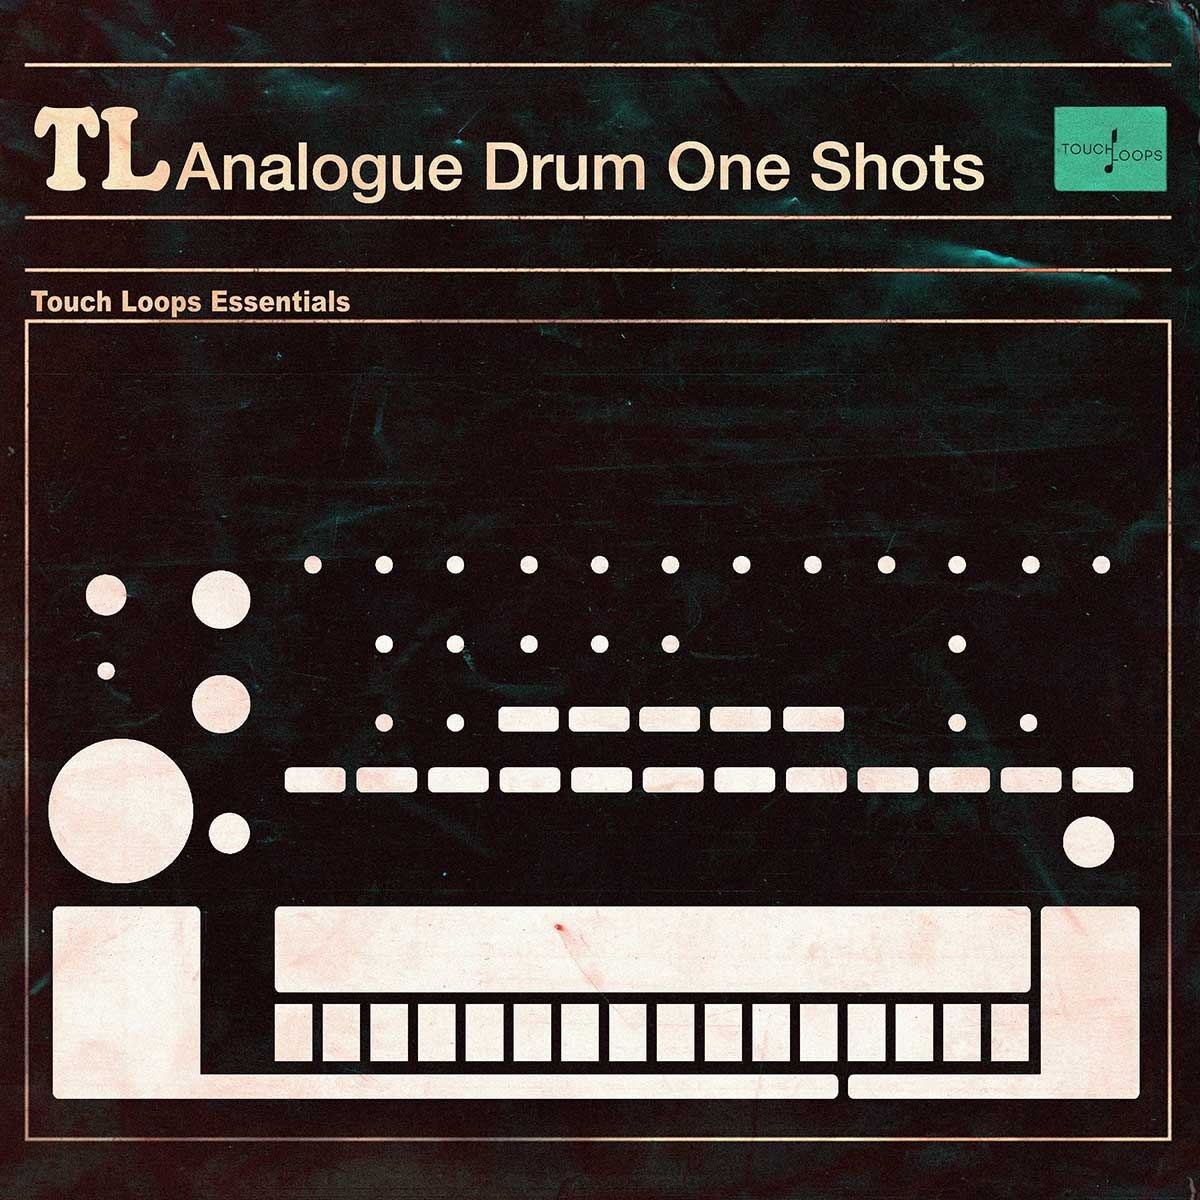 Analogue Drum One Shots